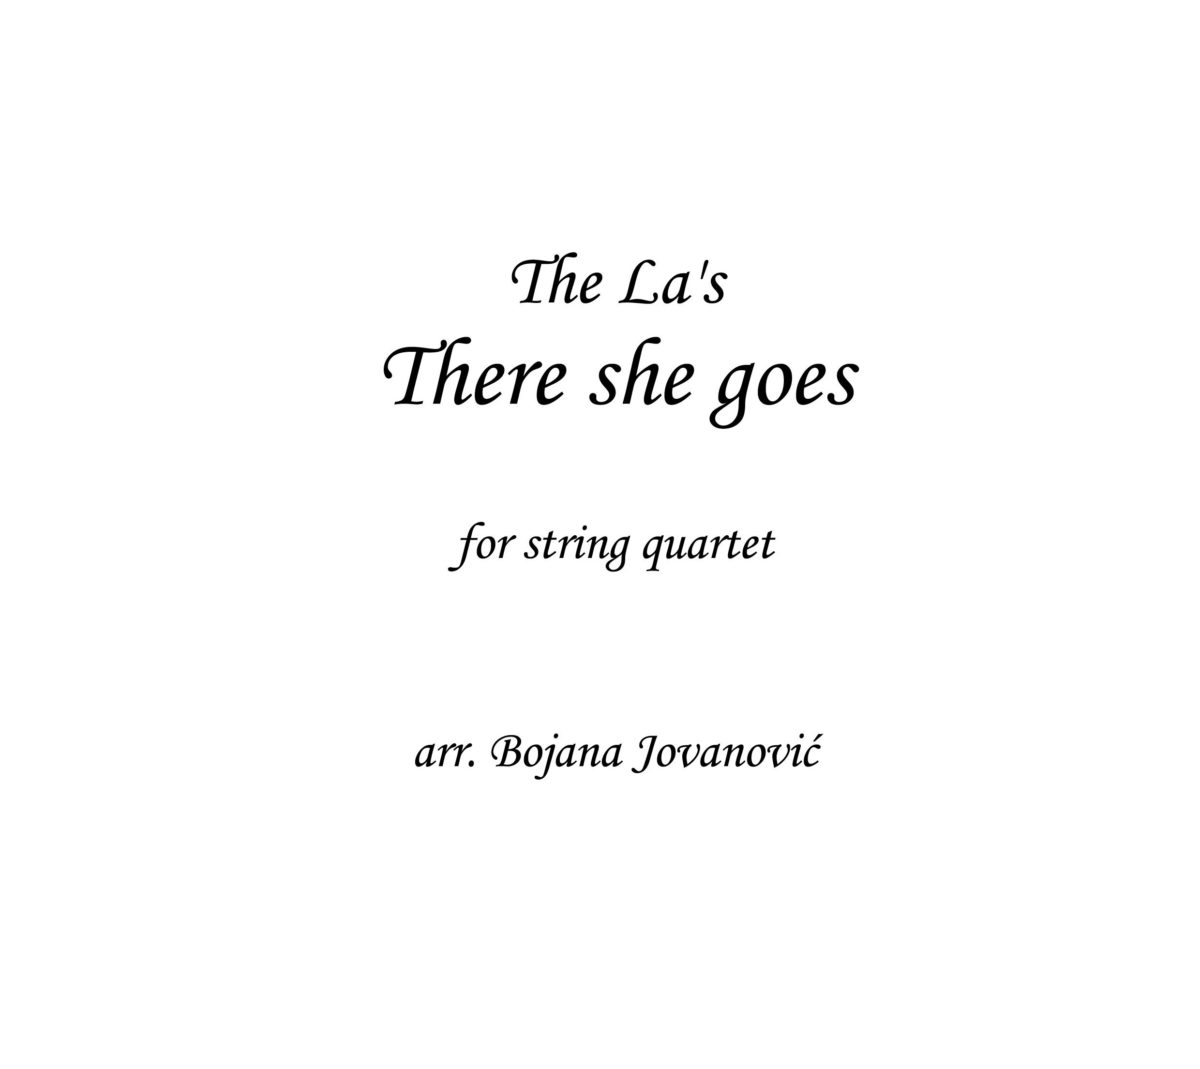 There she goes (The La's) - Sheet Music